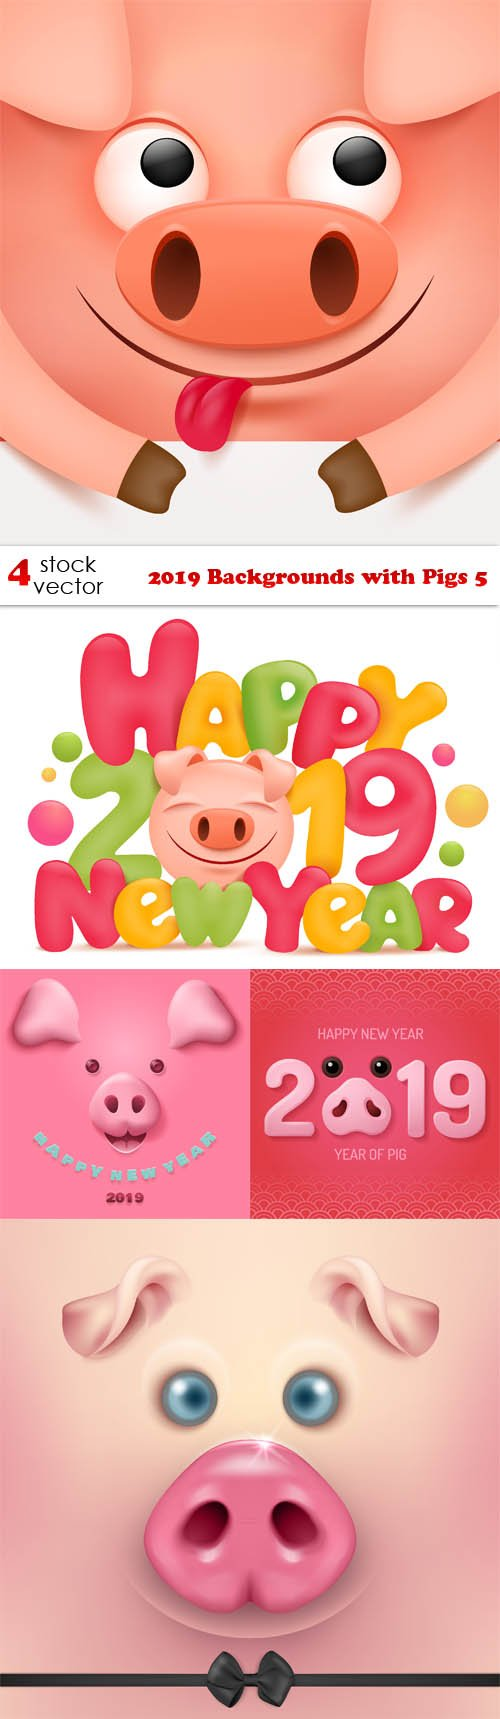 Vectors - 2019 Backgrounds with Pigs 5